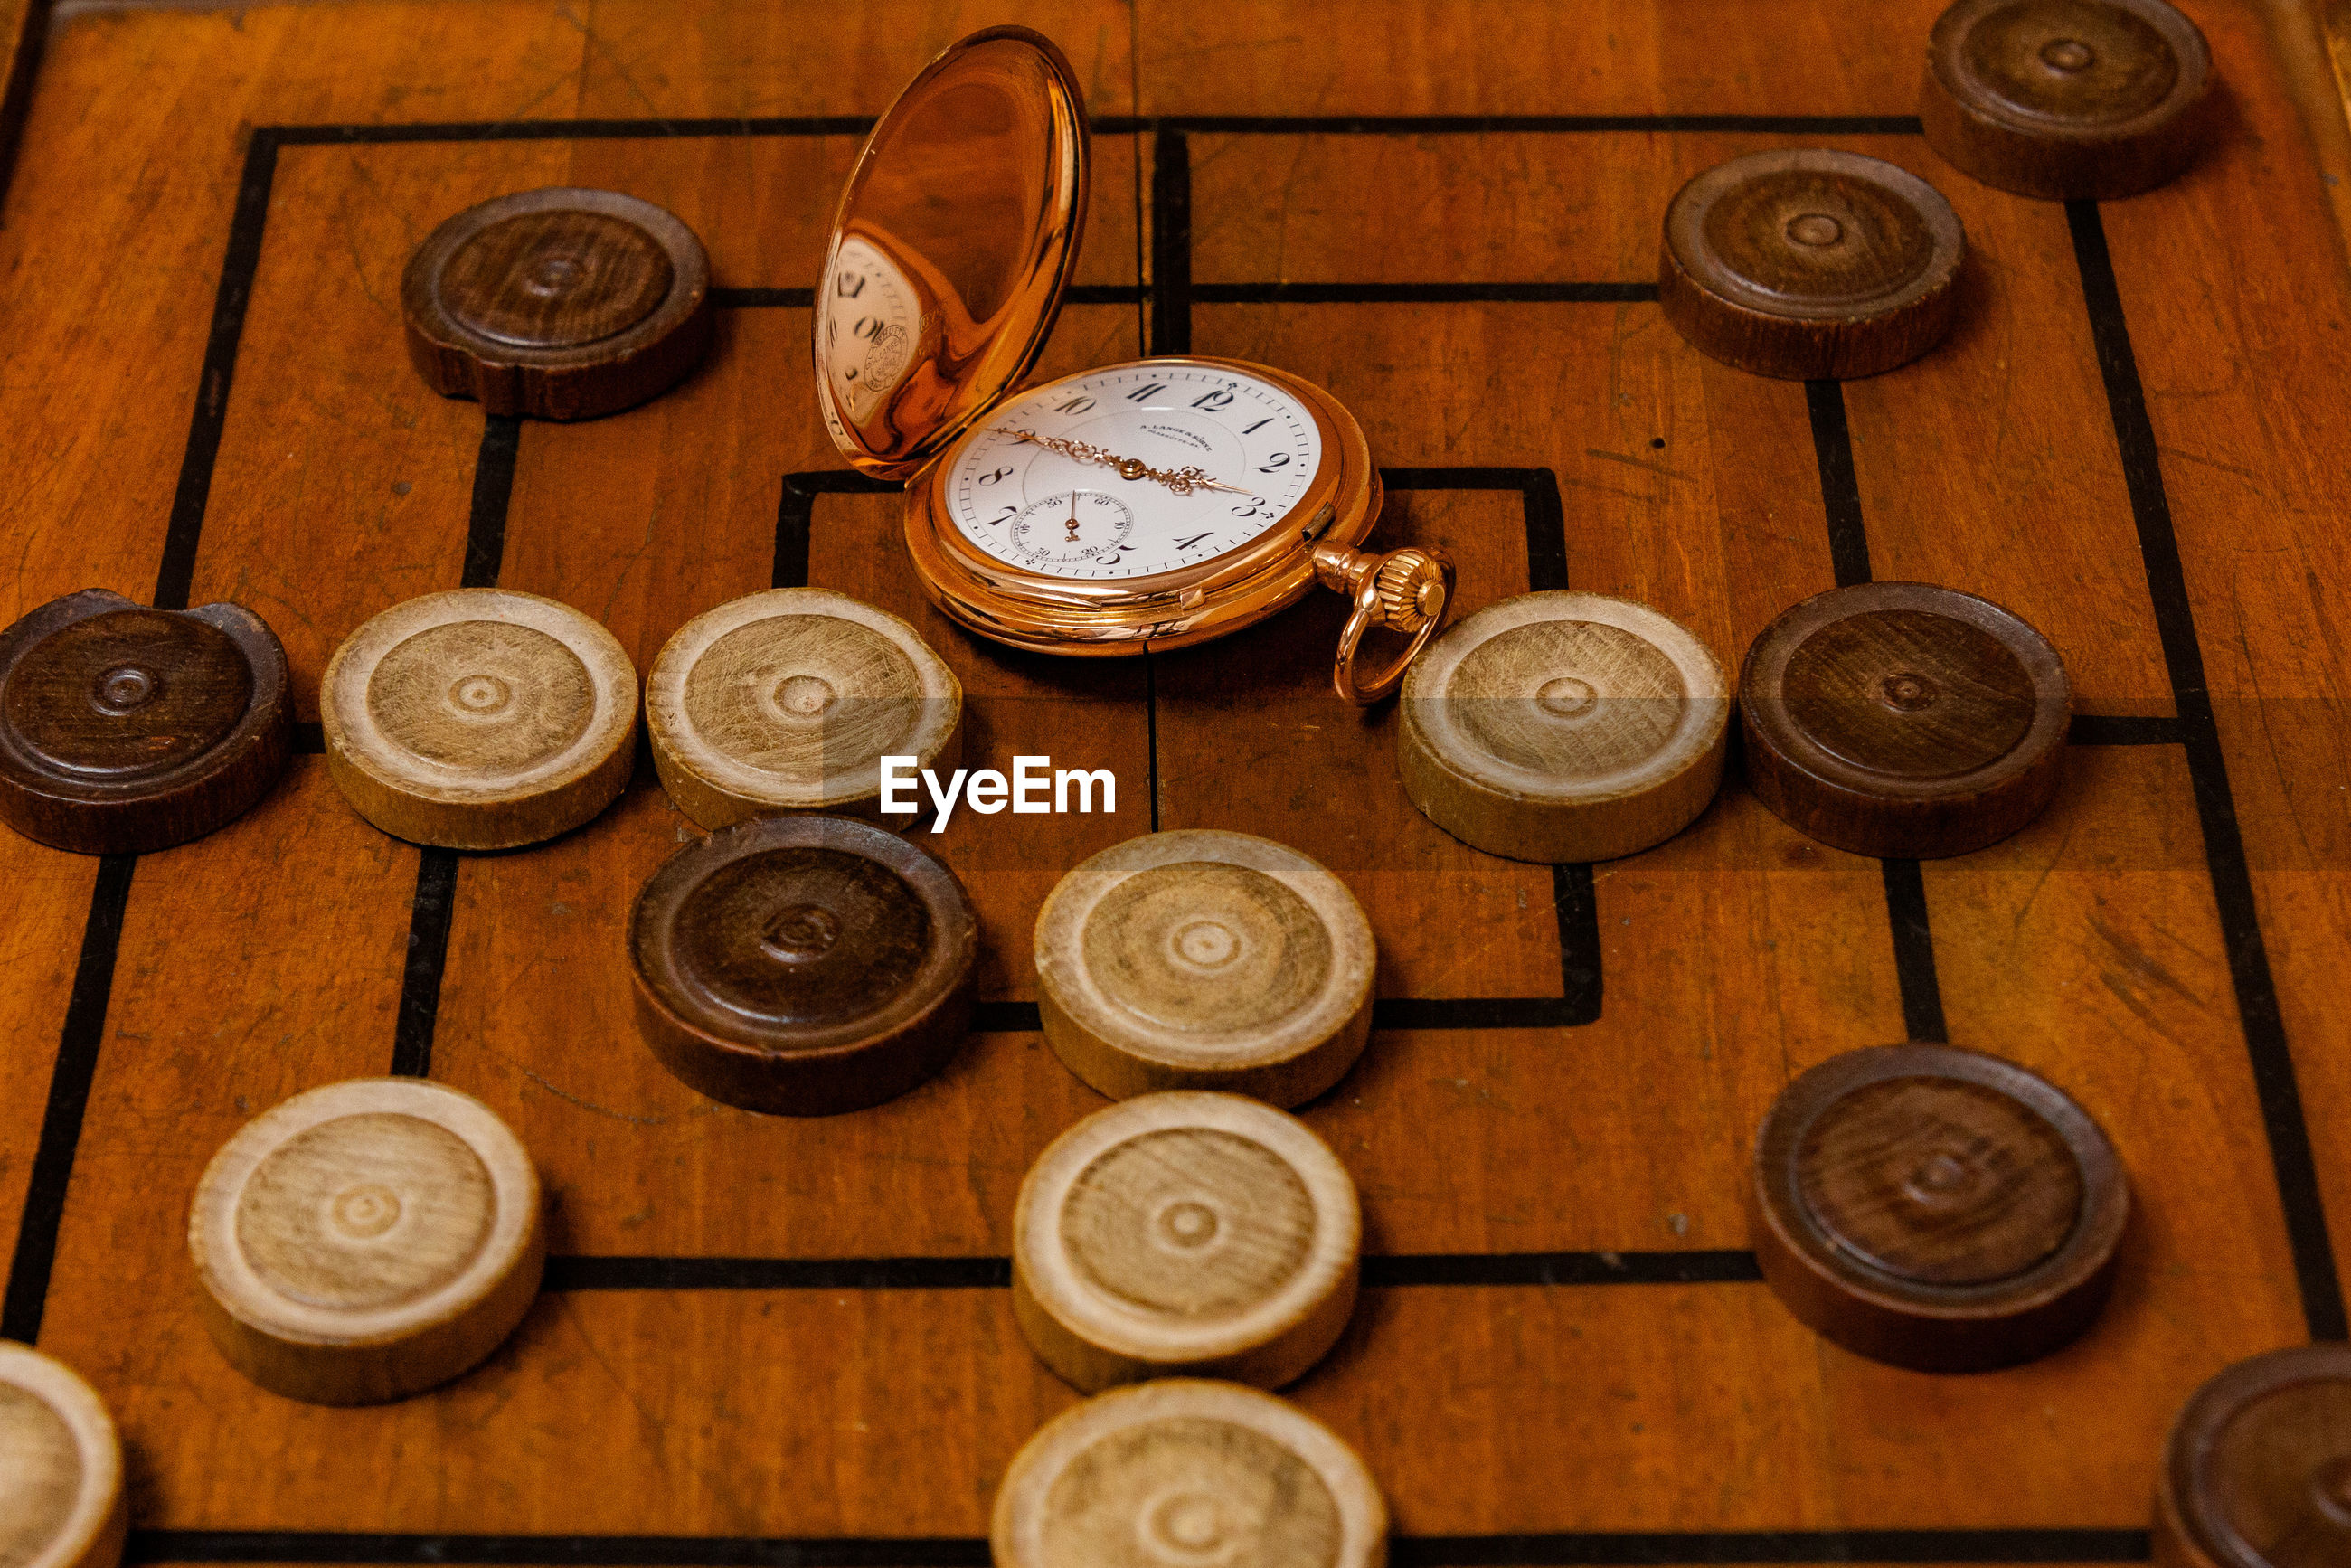 High angle view of pocket watch and board game